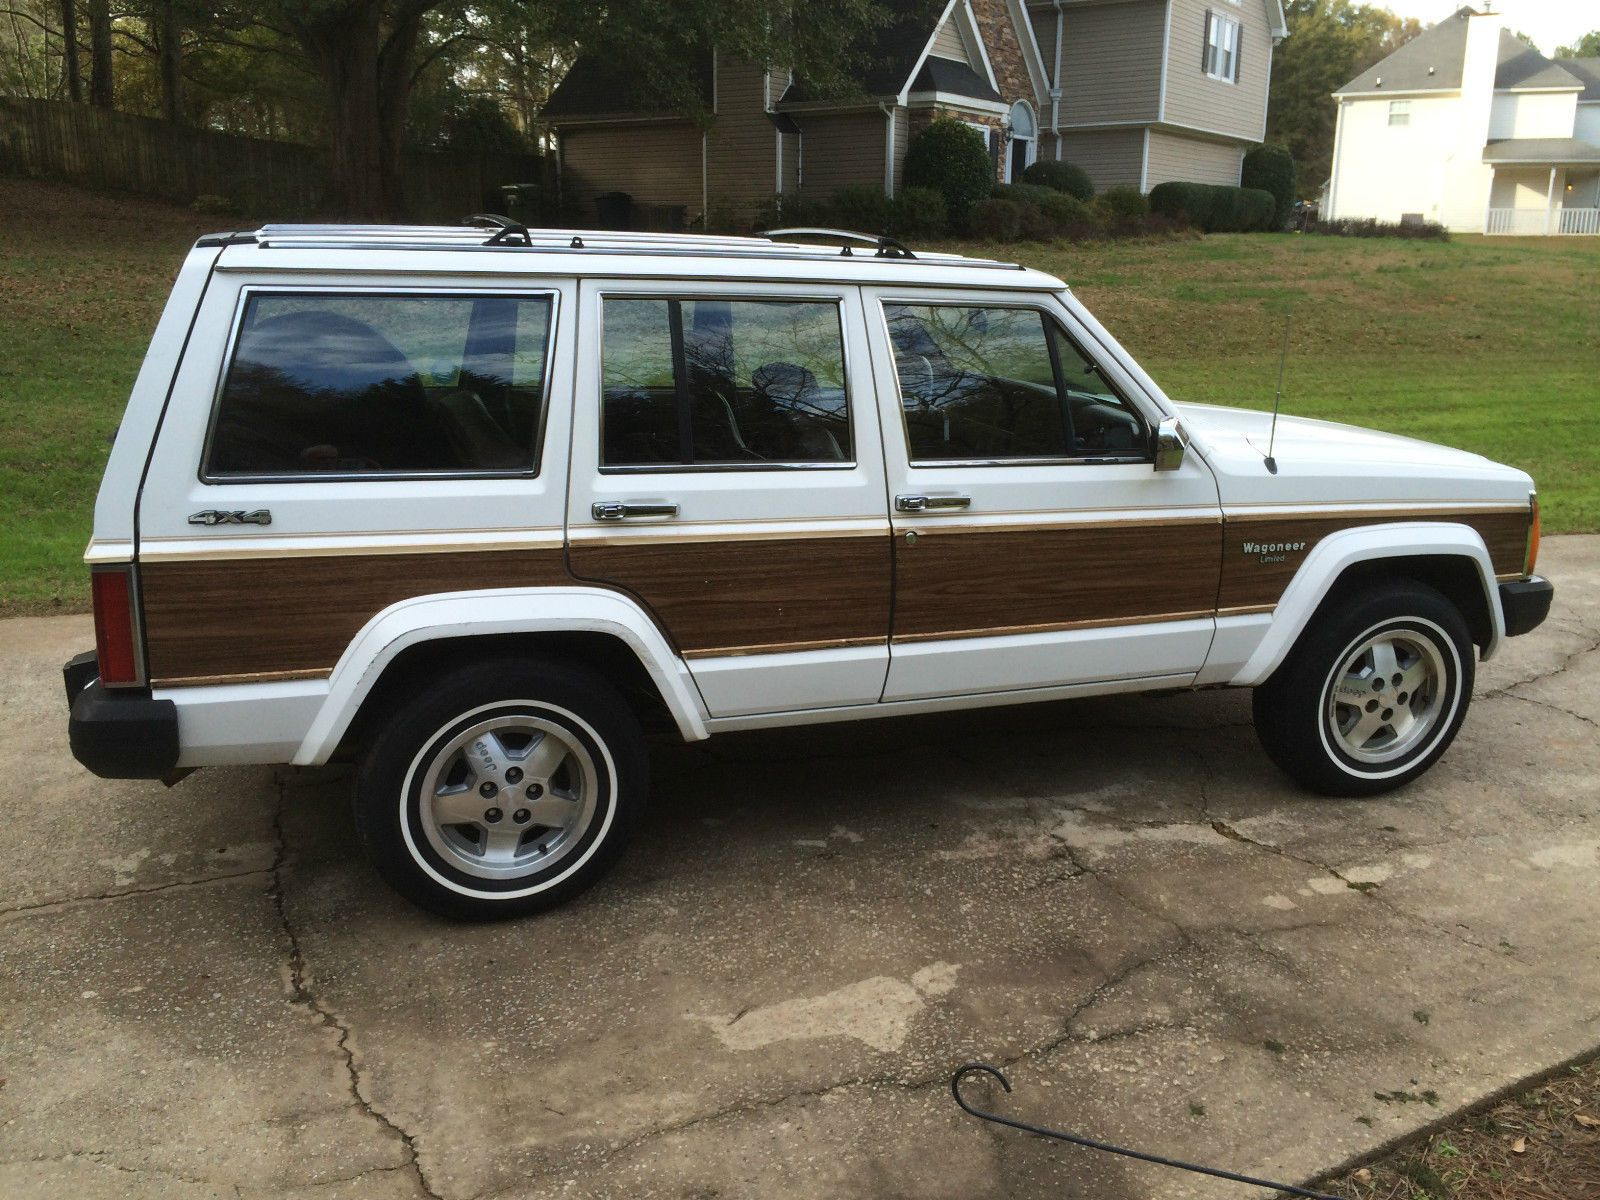 jeep : cherokee pioneer limited | cherokee, jeeps and jeep